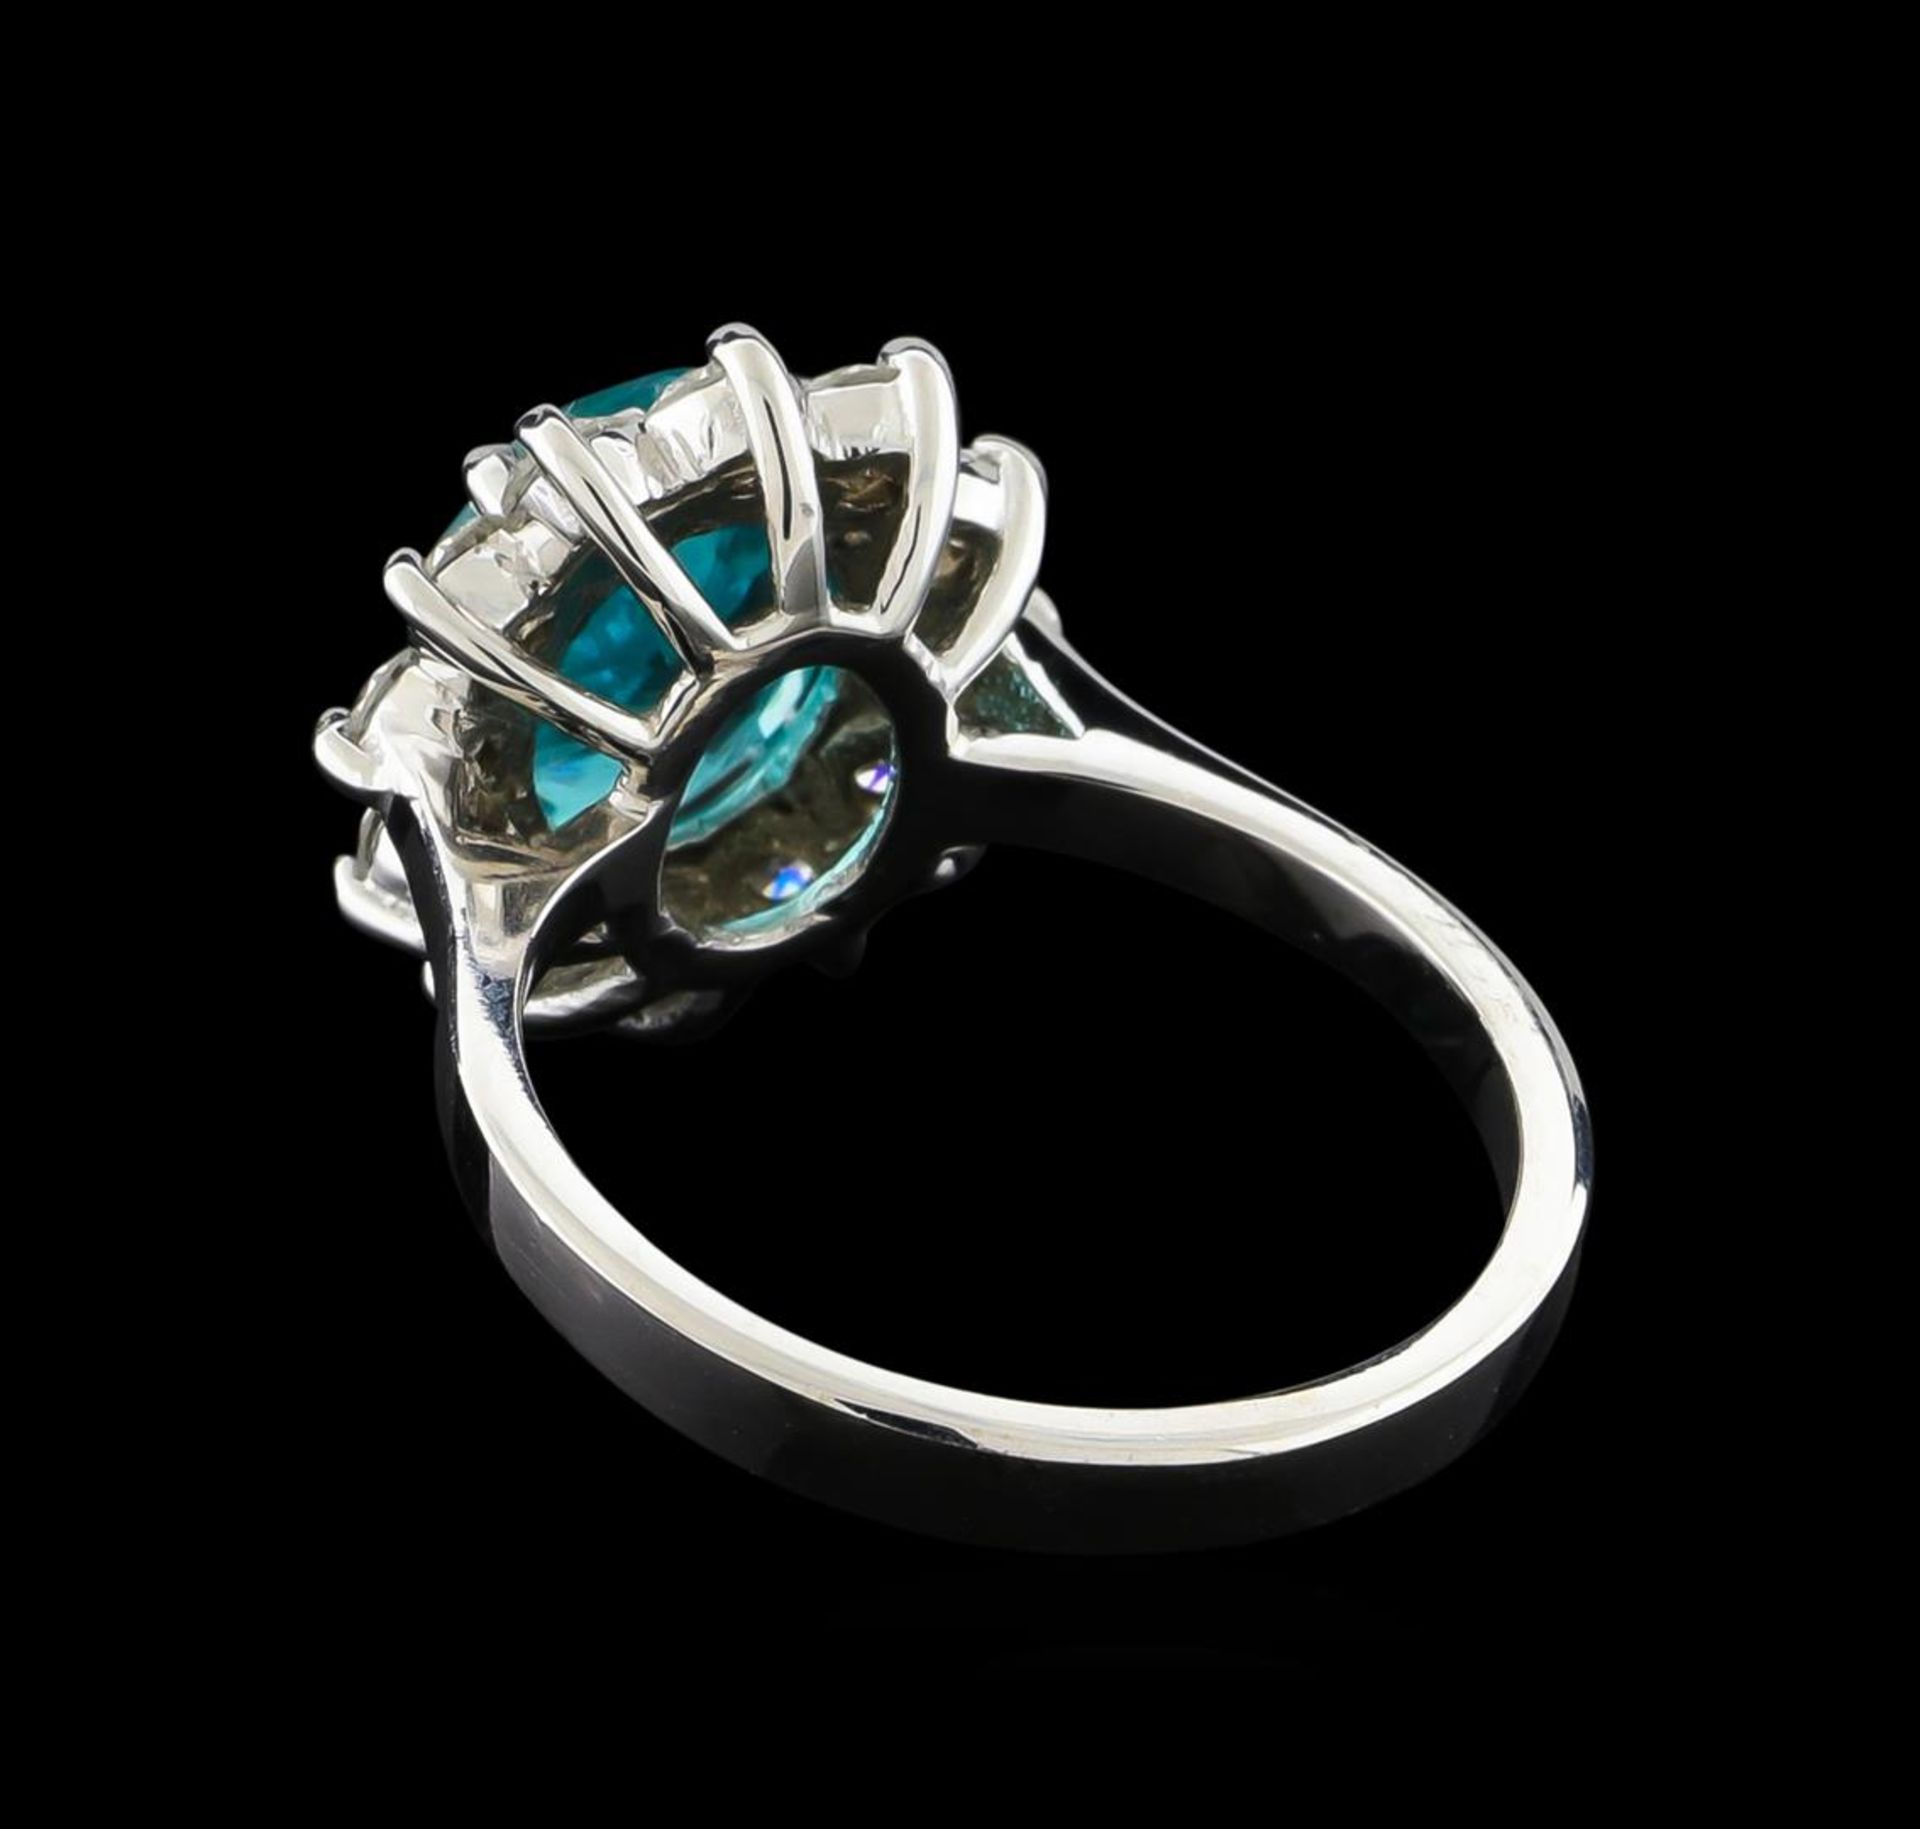 2.78 ctw Apatite and Diamond Ring - 14KT White Gold - Image 2 of 4